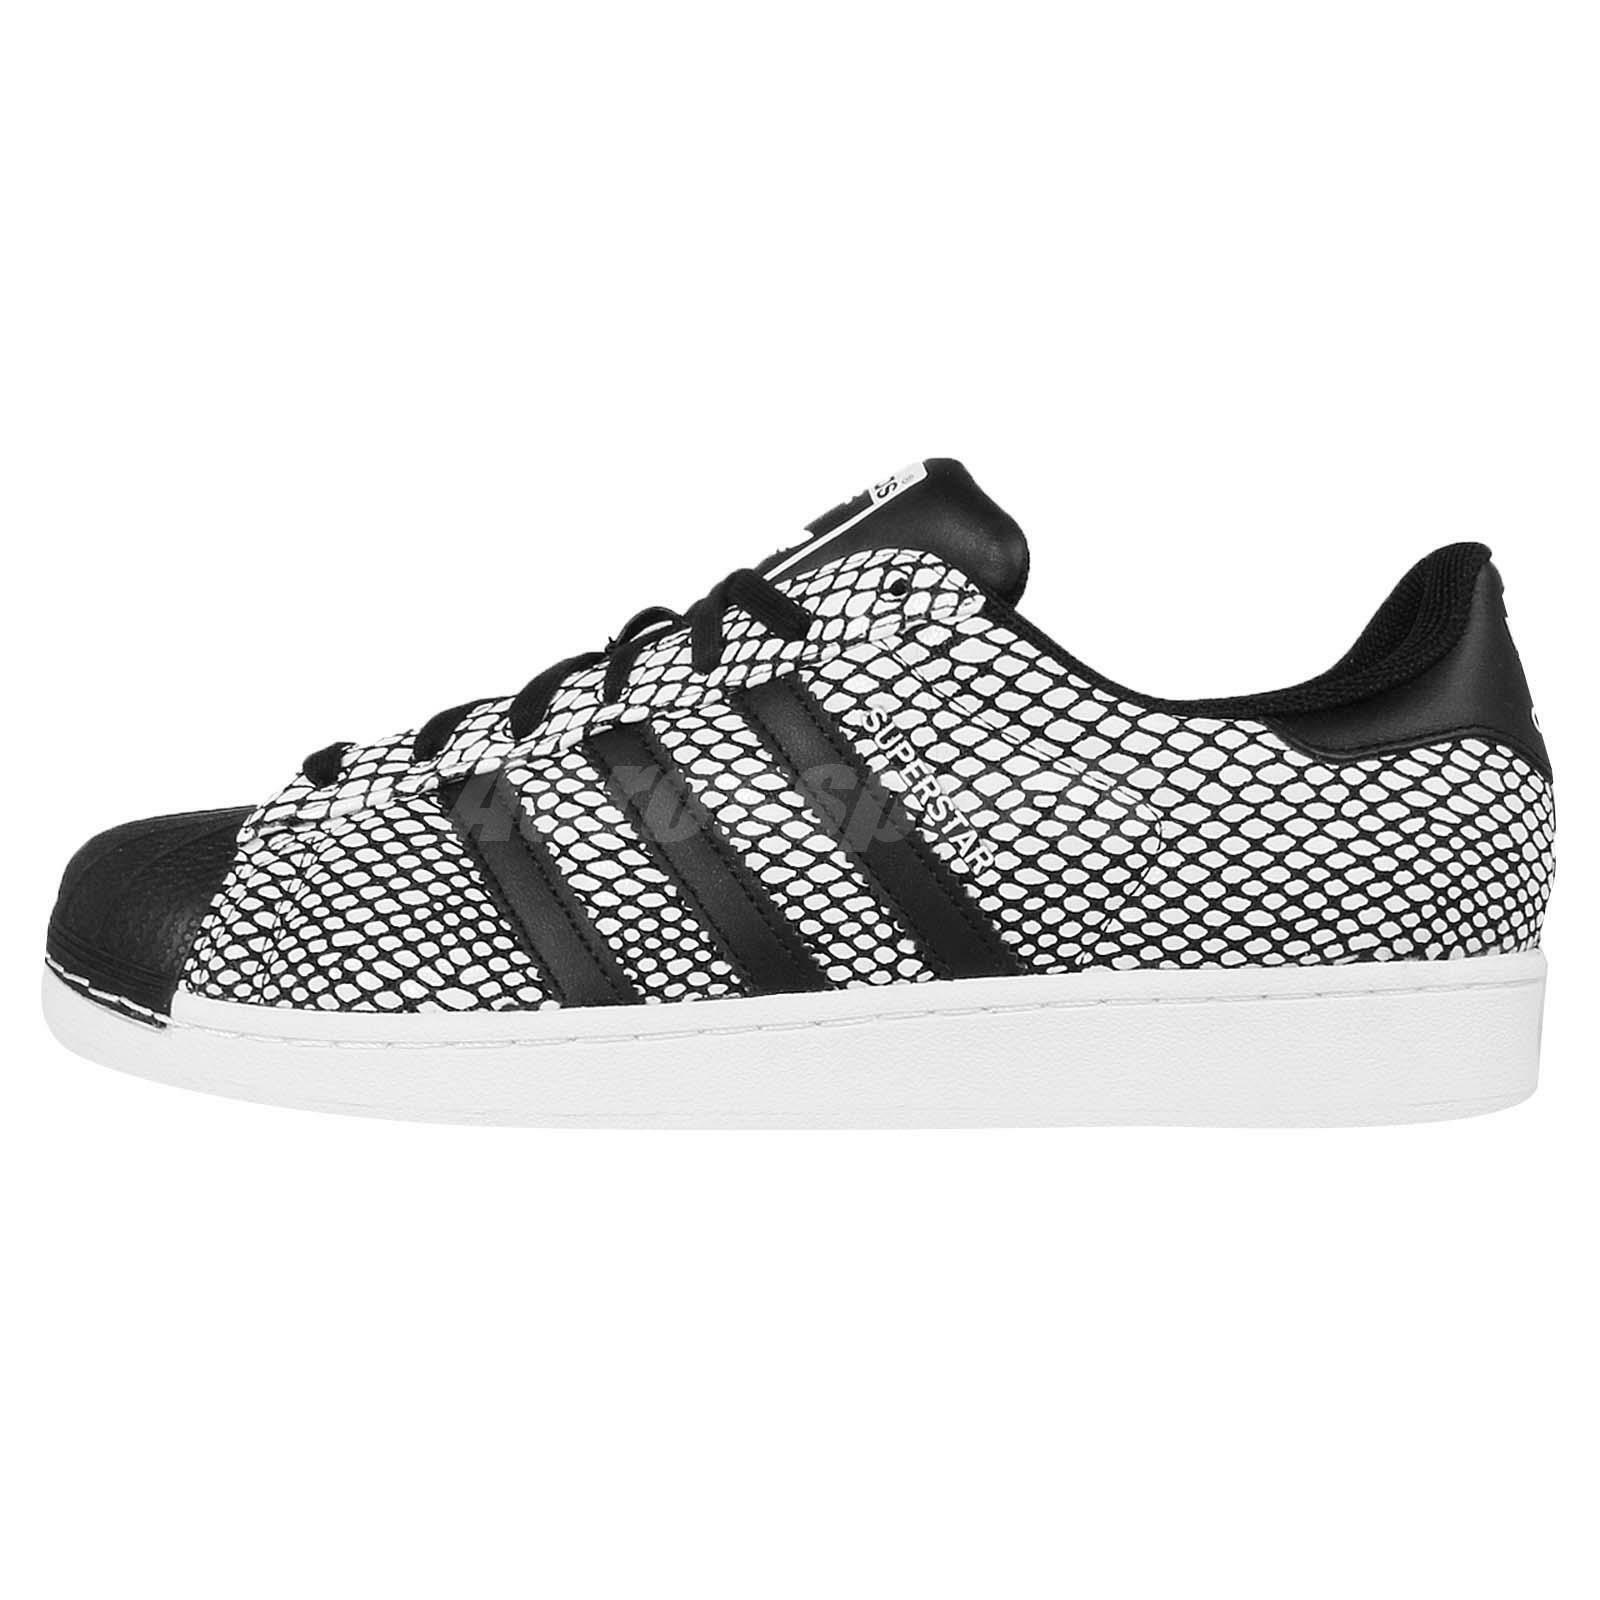 Adidas Superstar Snake Pack Black White Snakeskin Classic Shoes Sneakers  S81728 hot sale 2017